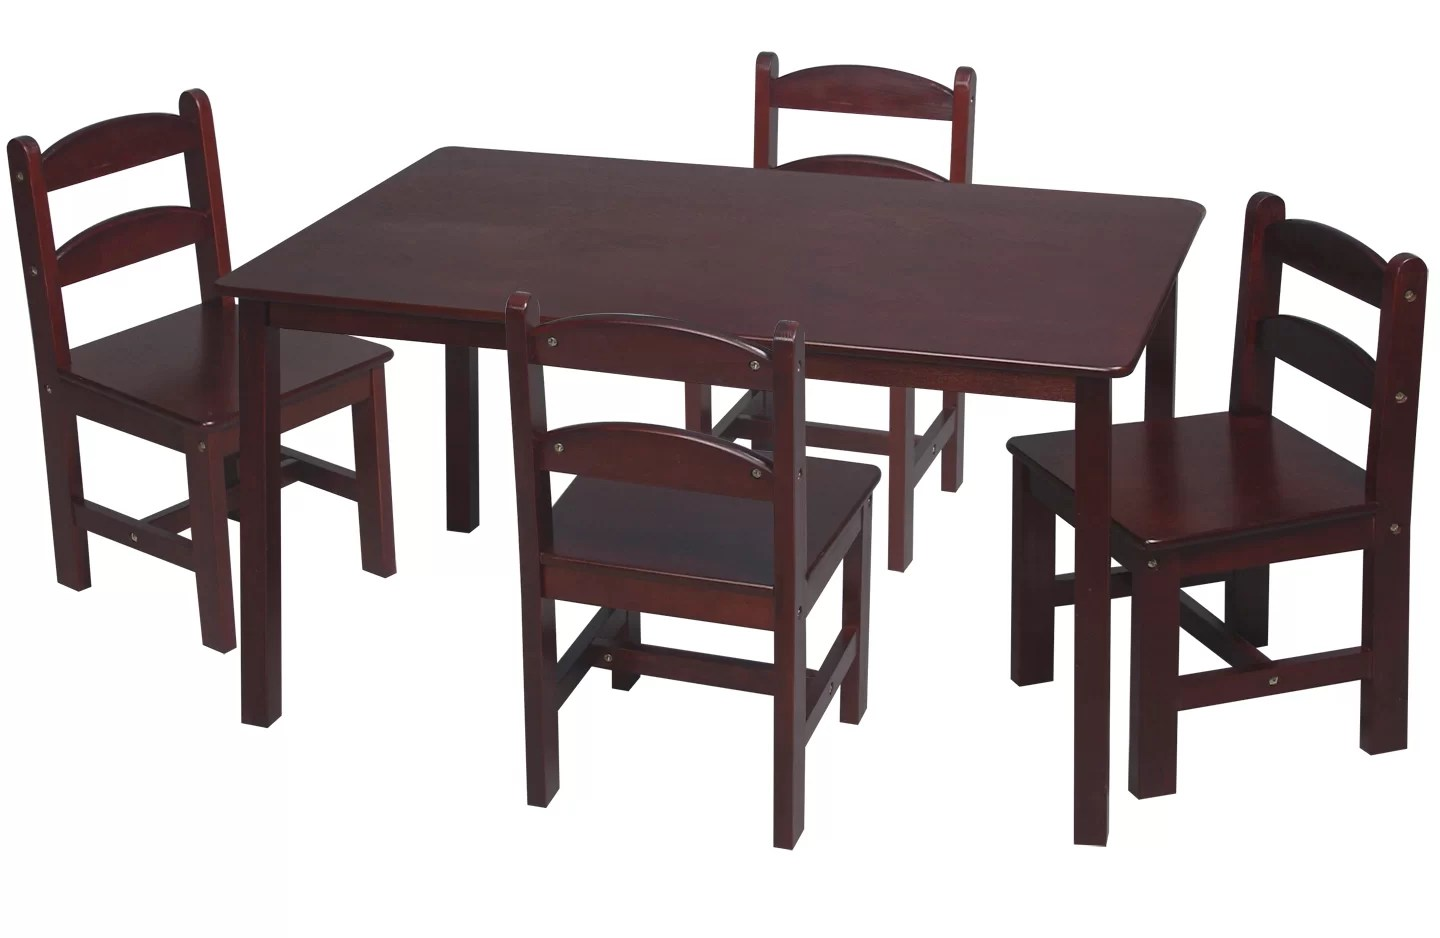 Kids Table And Chair Sets Kids 5 Pc Table And Chair Set Childrens Furniture